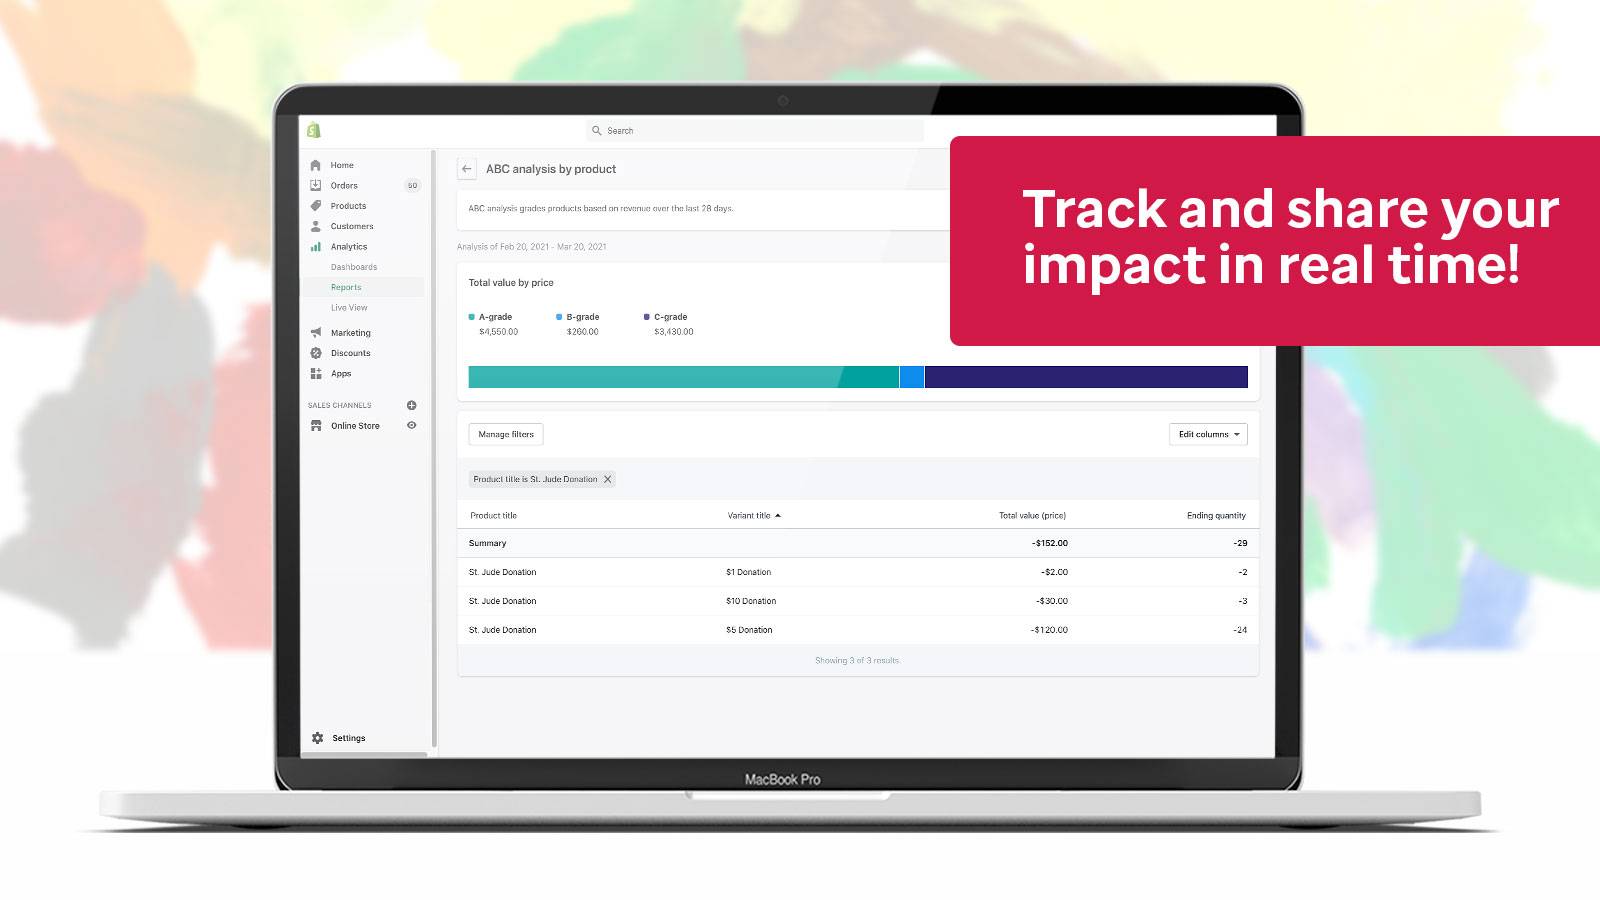 Track and share your impact in real time!